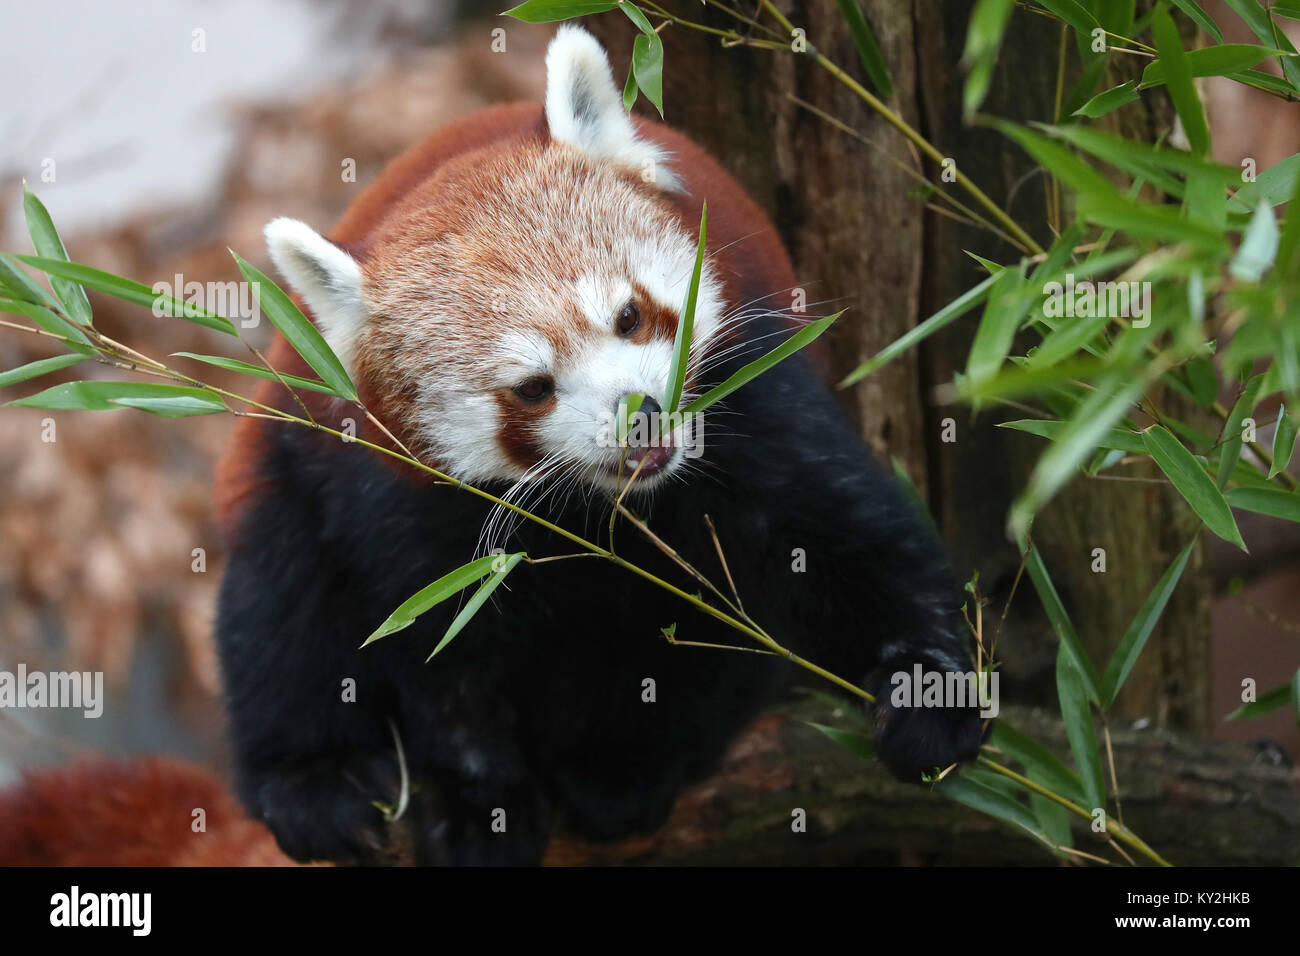 Nuremberg, Germany. 12th Jan, 2018. A small red panda (Ailurus fulgens) eating in its cage at the zoo in Nuremberg, - Stock Image